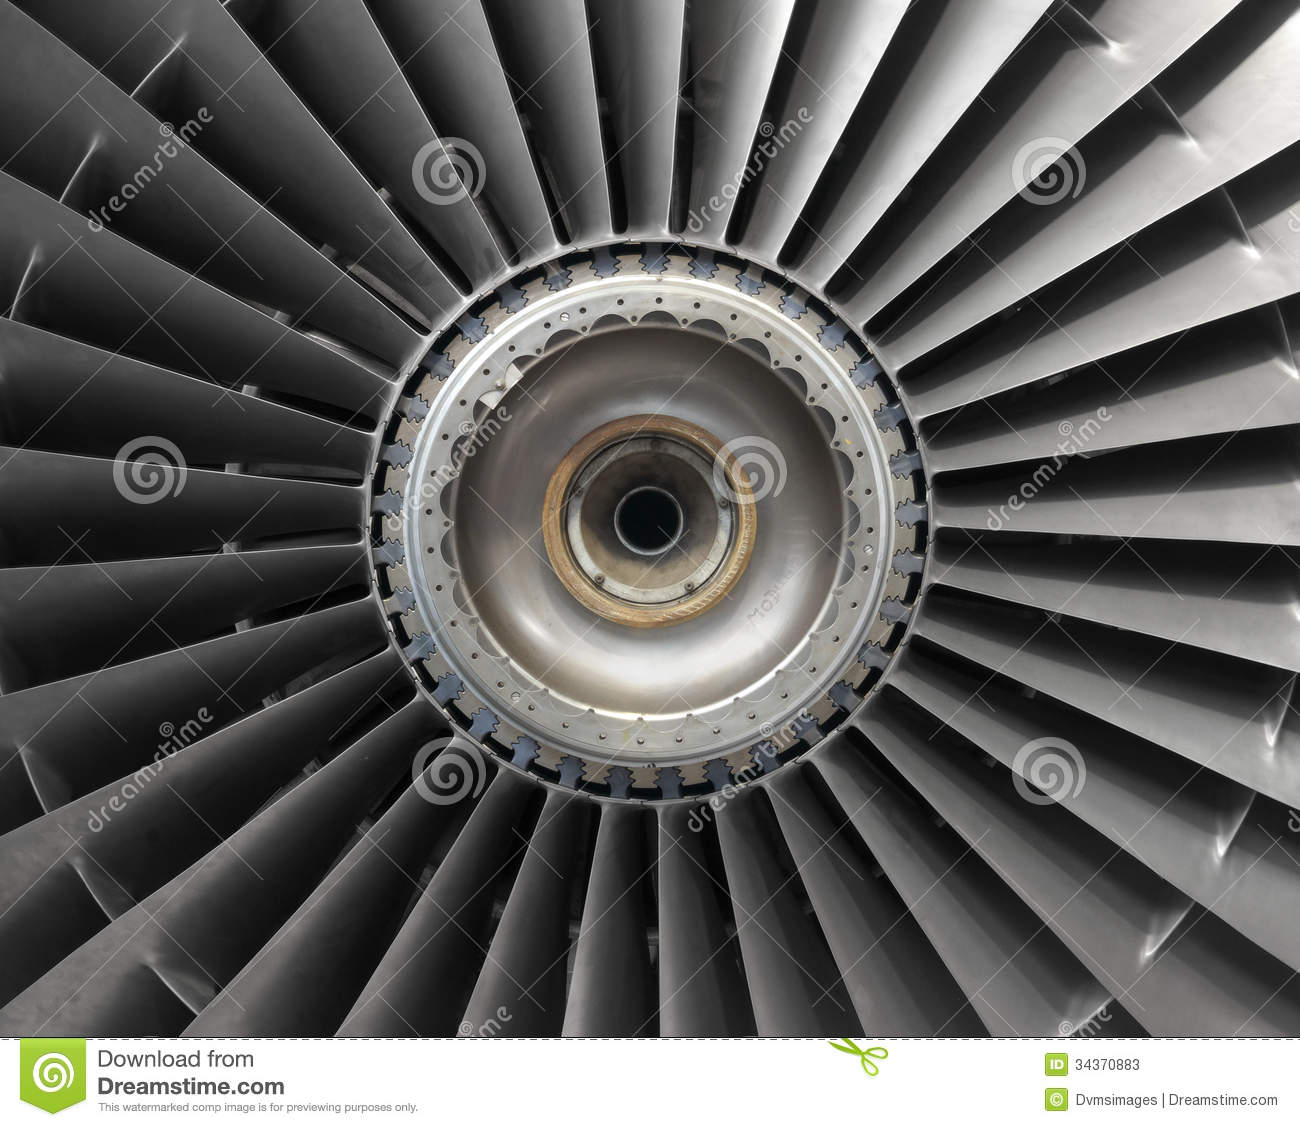 Jet Engine Fan Blades : Aircraft engine blades stock image of grey